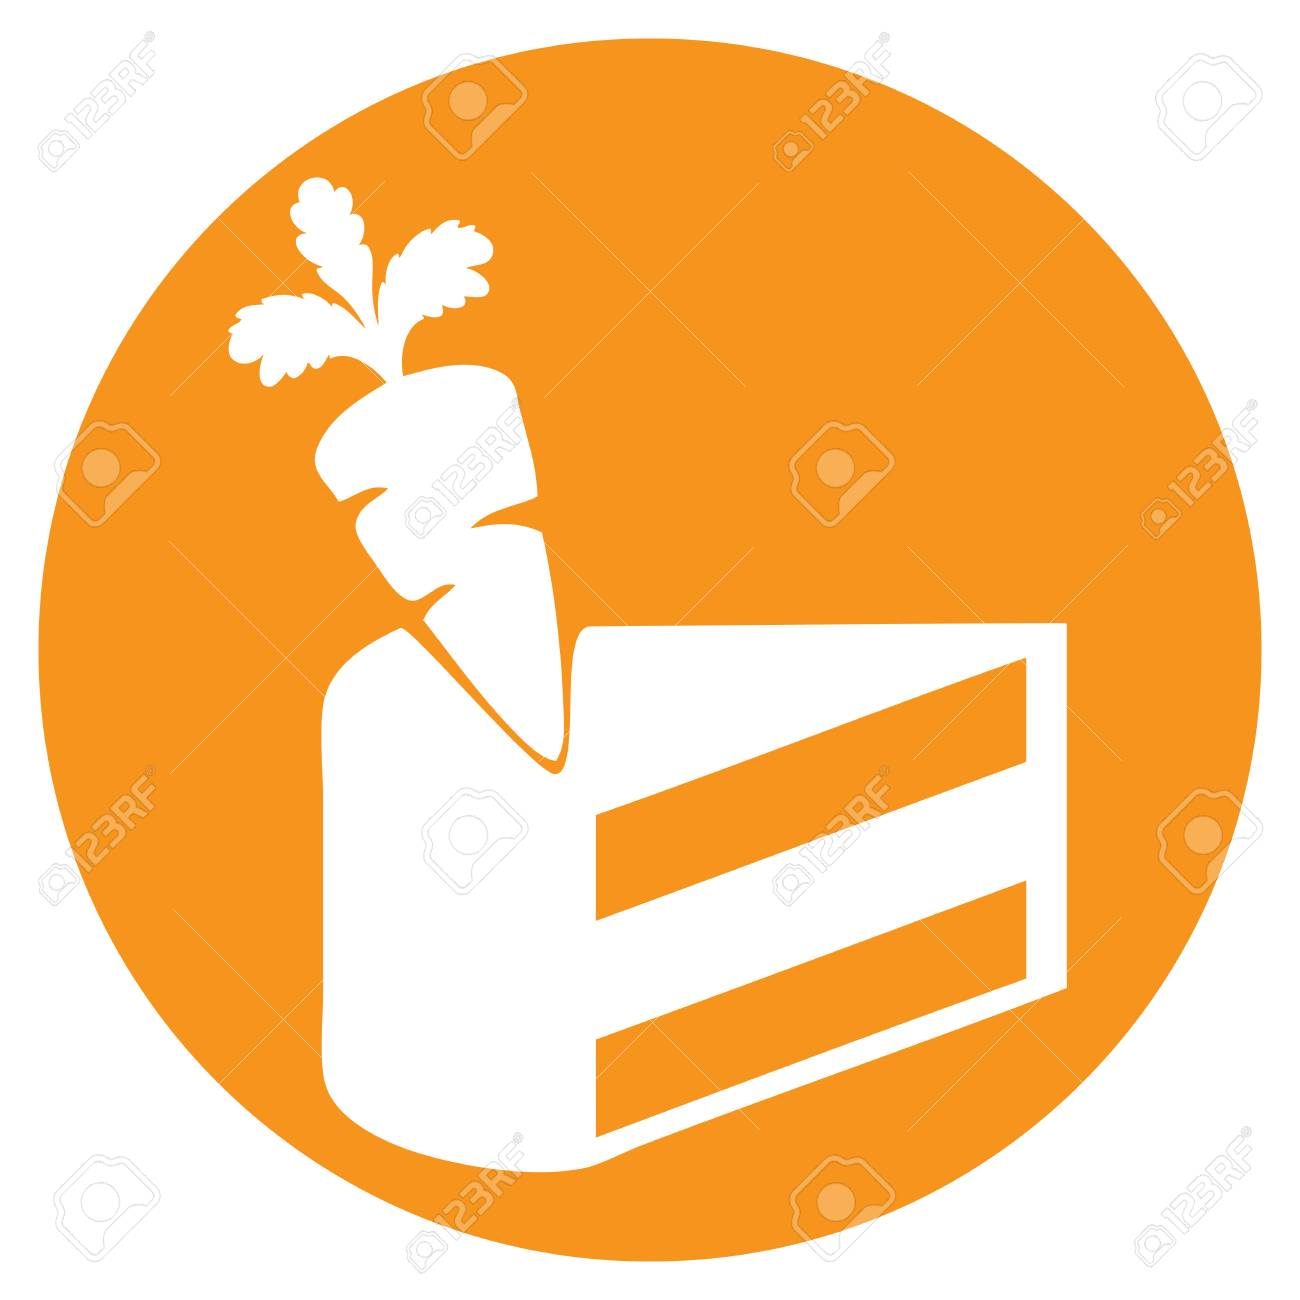 Carrot Cake Day Symbolism Cake With Carrots Royalty Free Cliparts